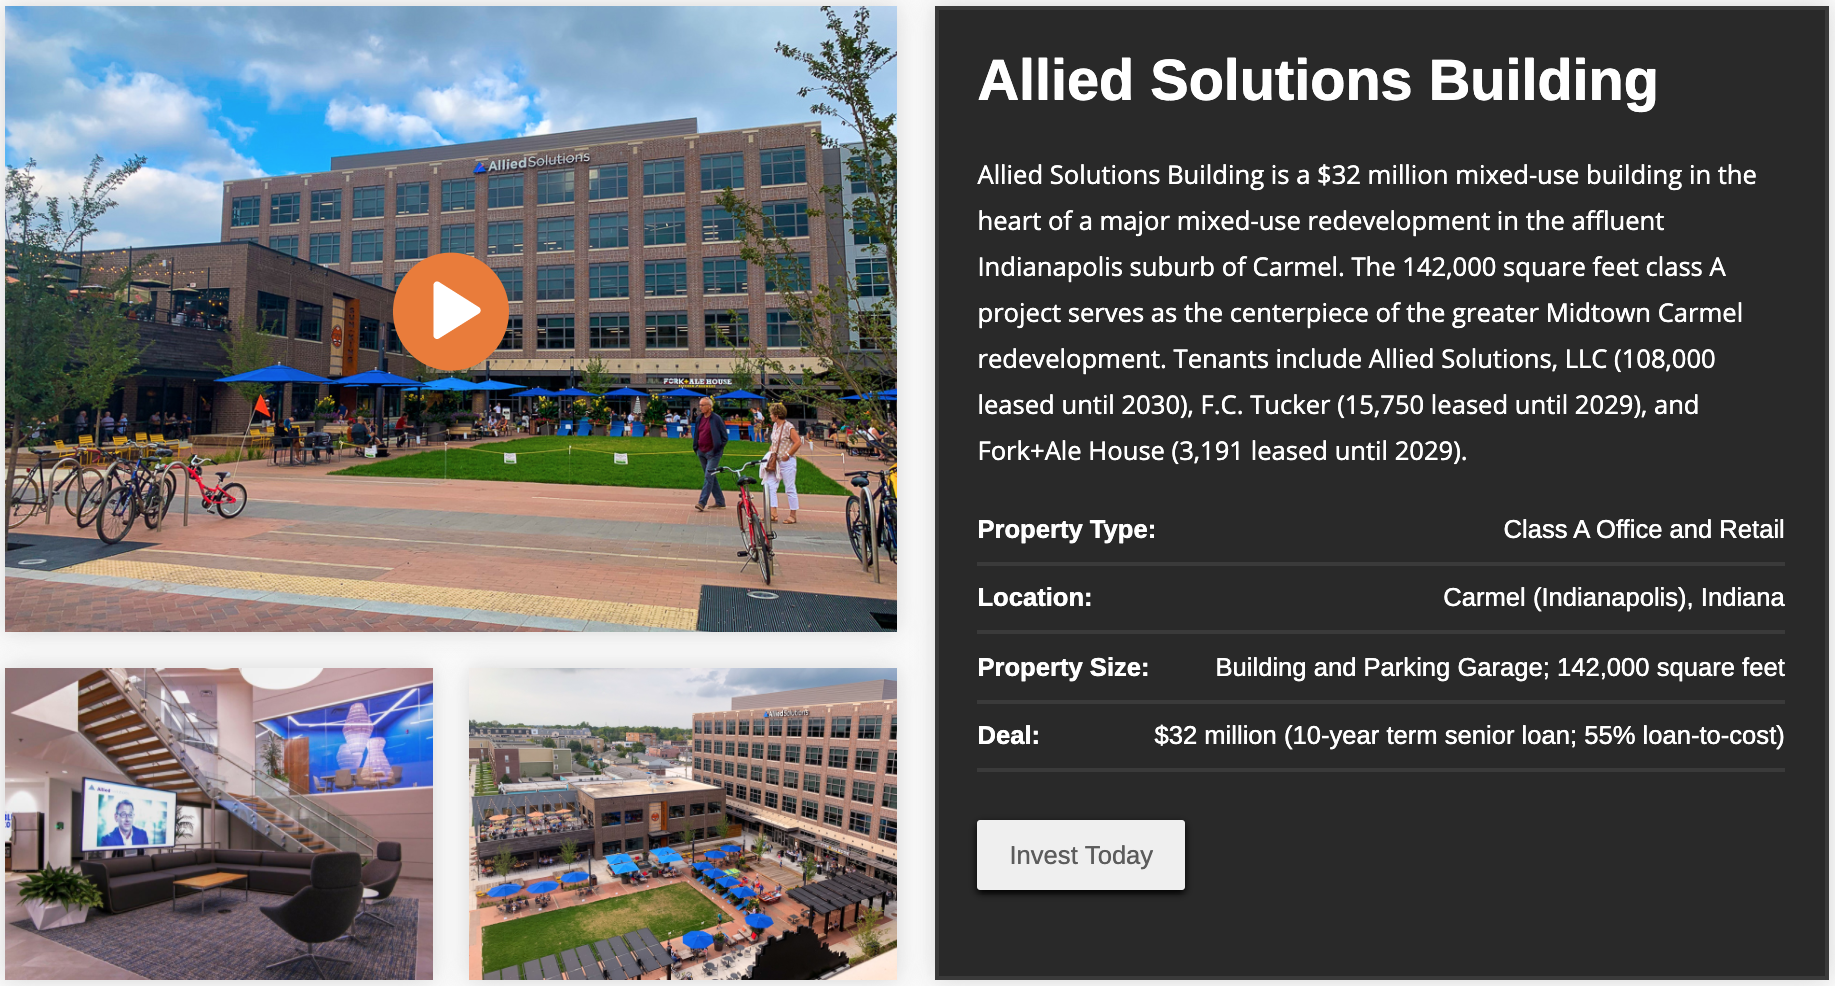 Allied Solutions Building